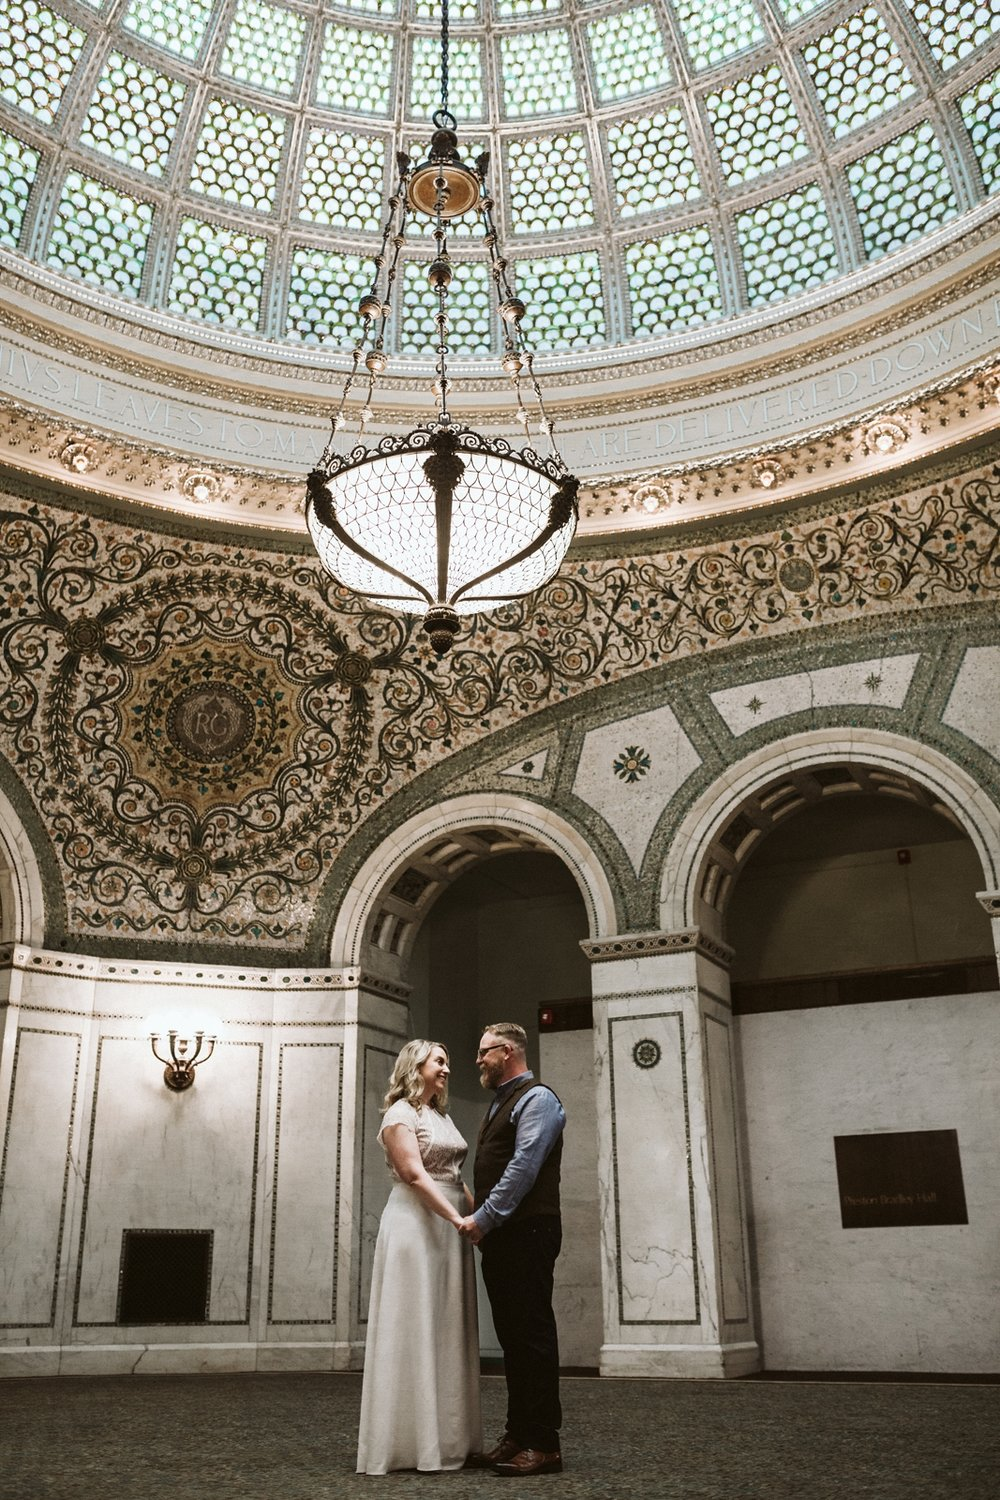 Tiffany dome Chicago | small wedding | lisa kathan photography